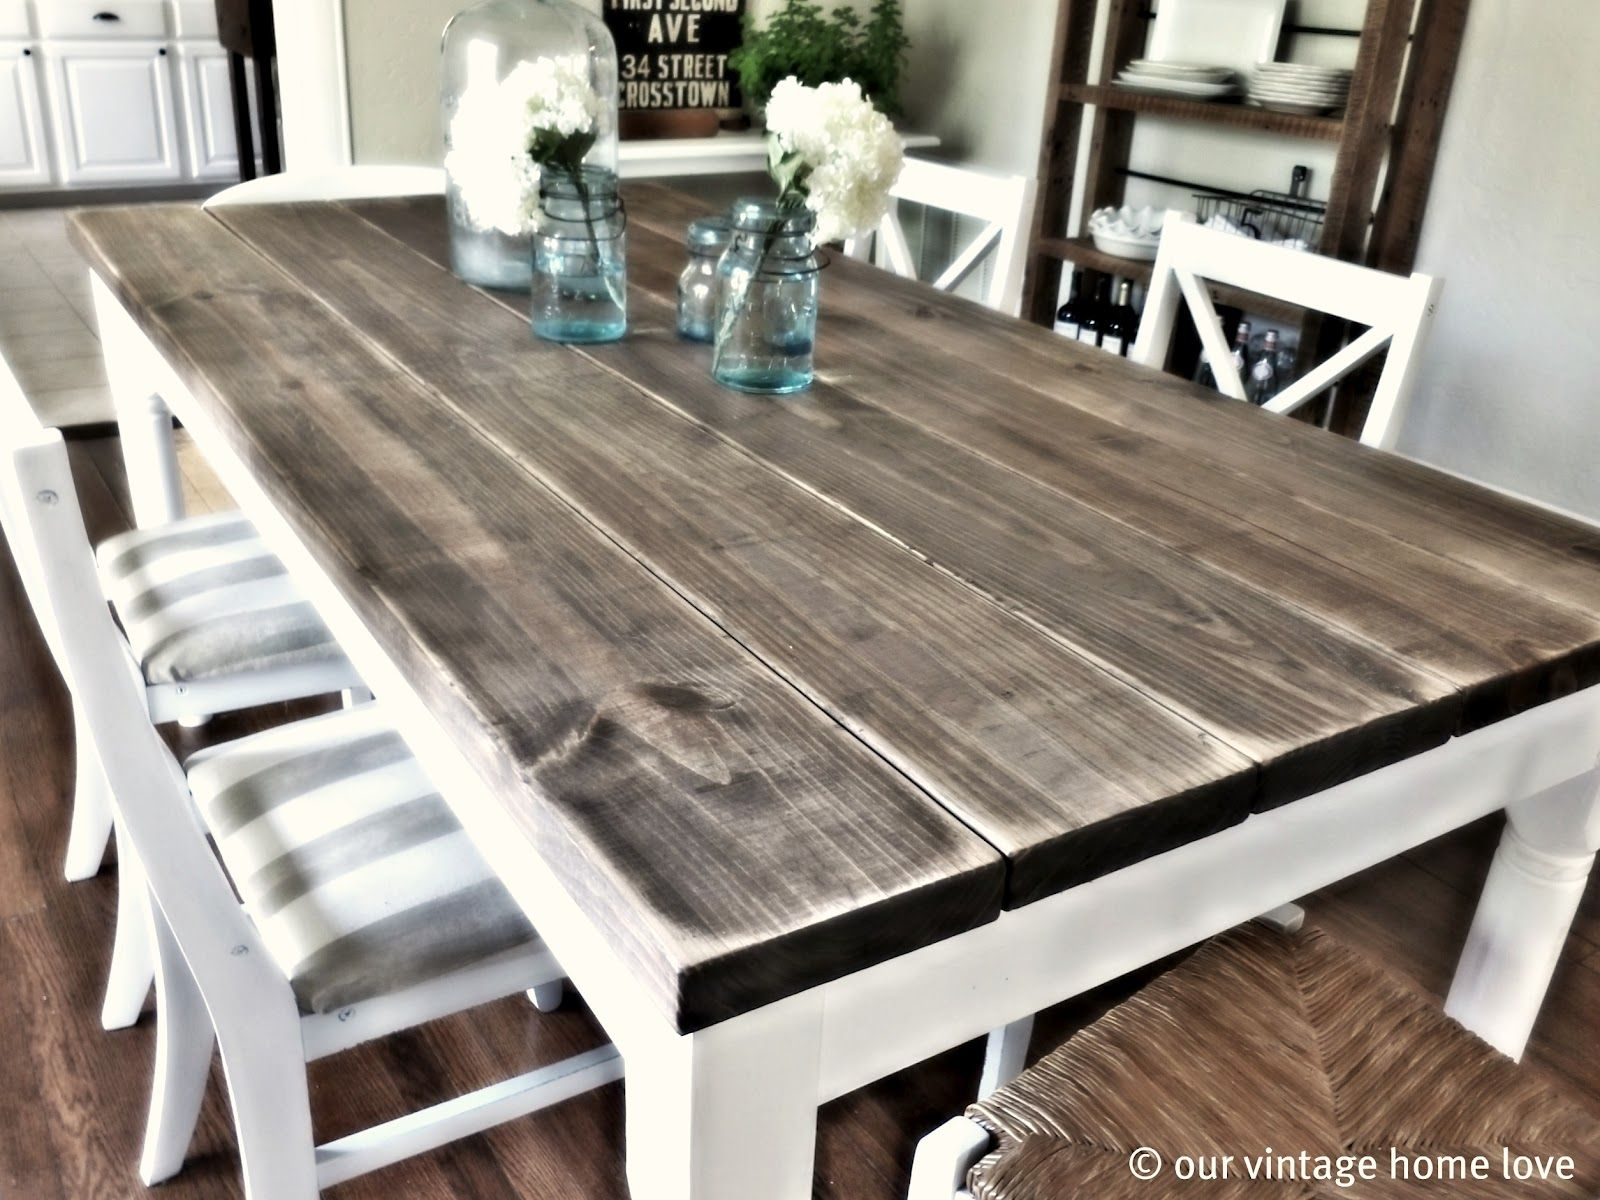 Our Vintage Home Love Dining Room Table Diy Dining Room Diy Dining Room Table Diy Dining